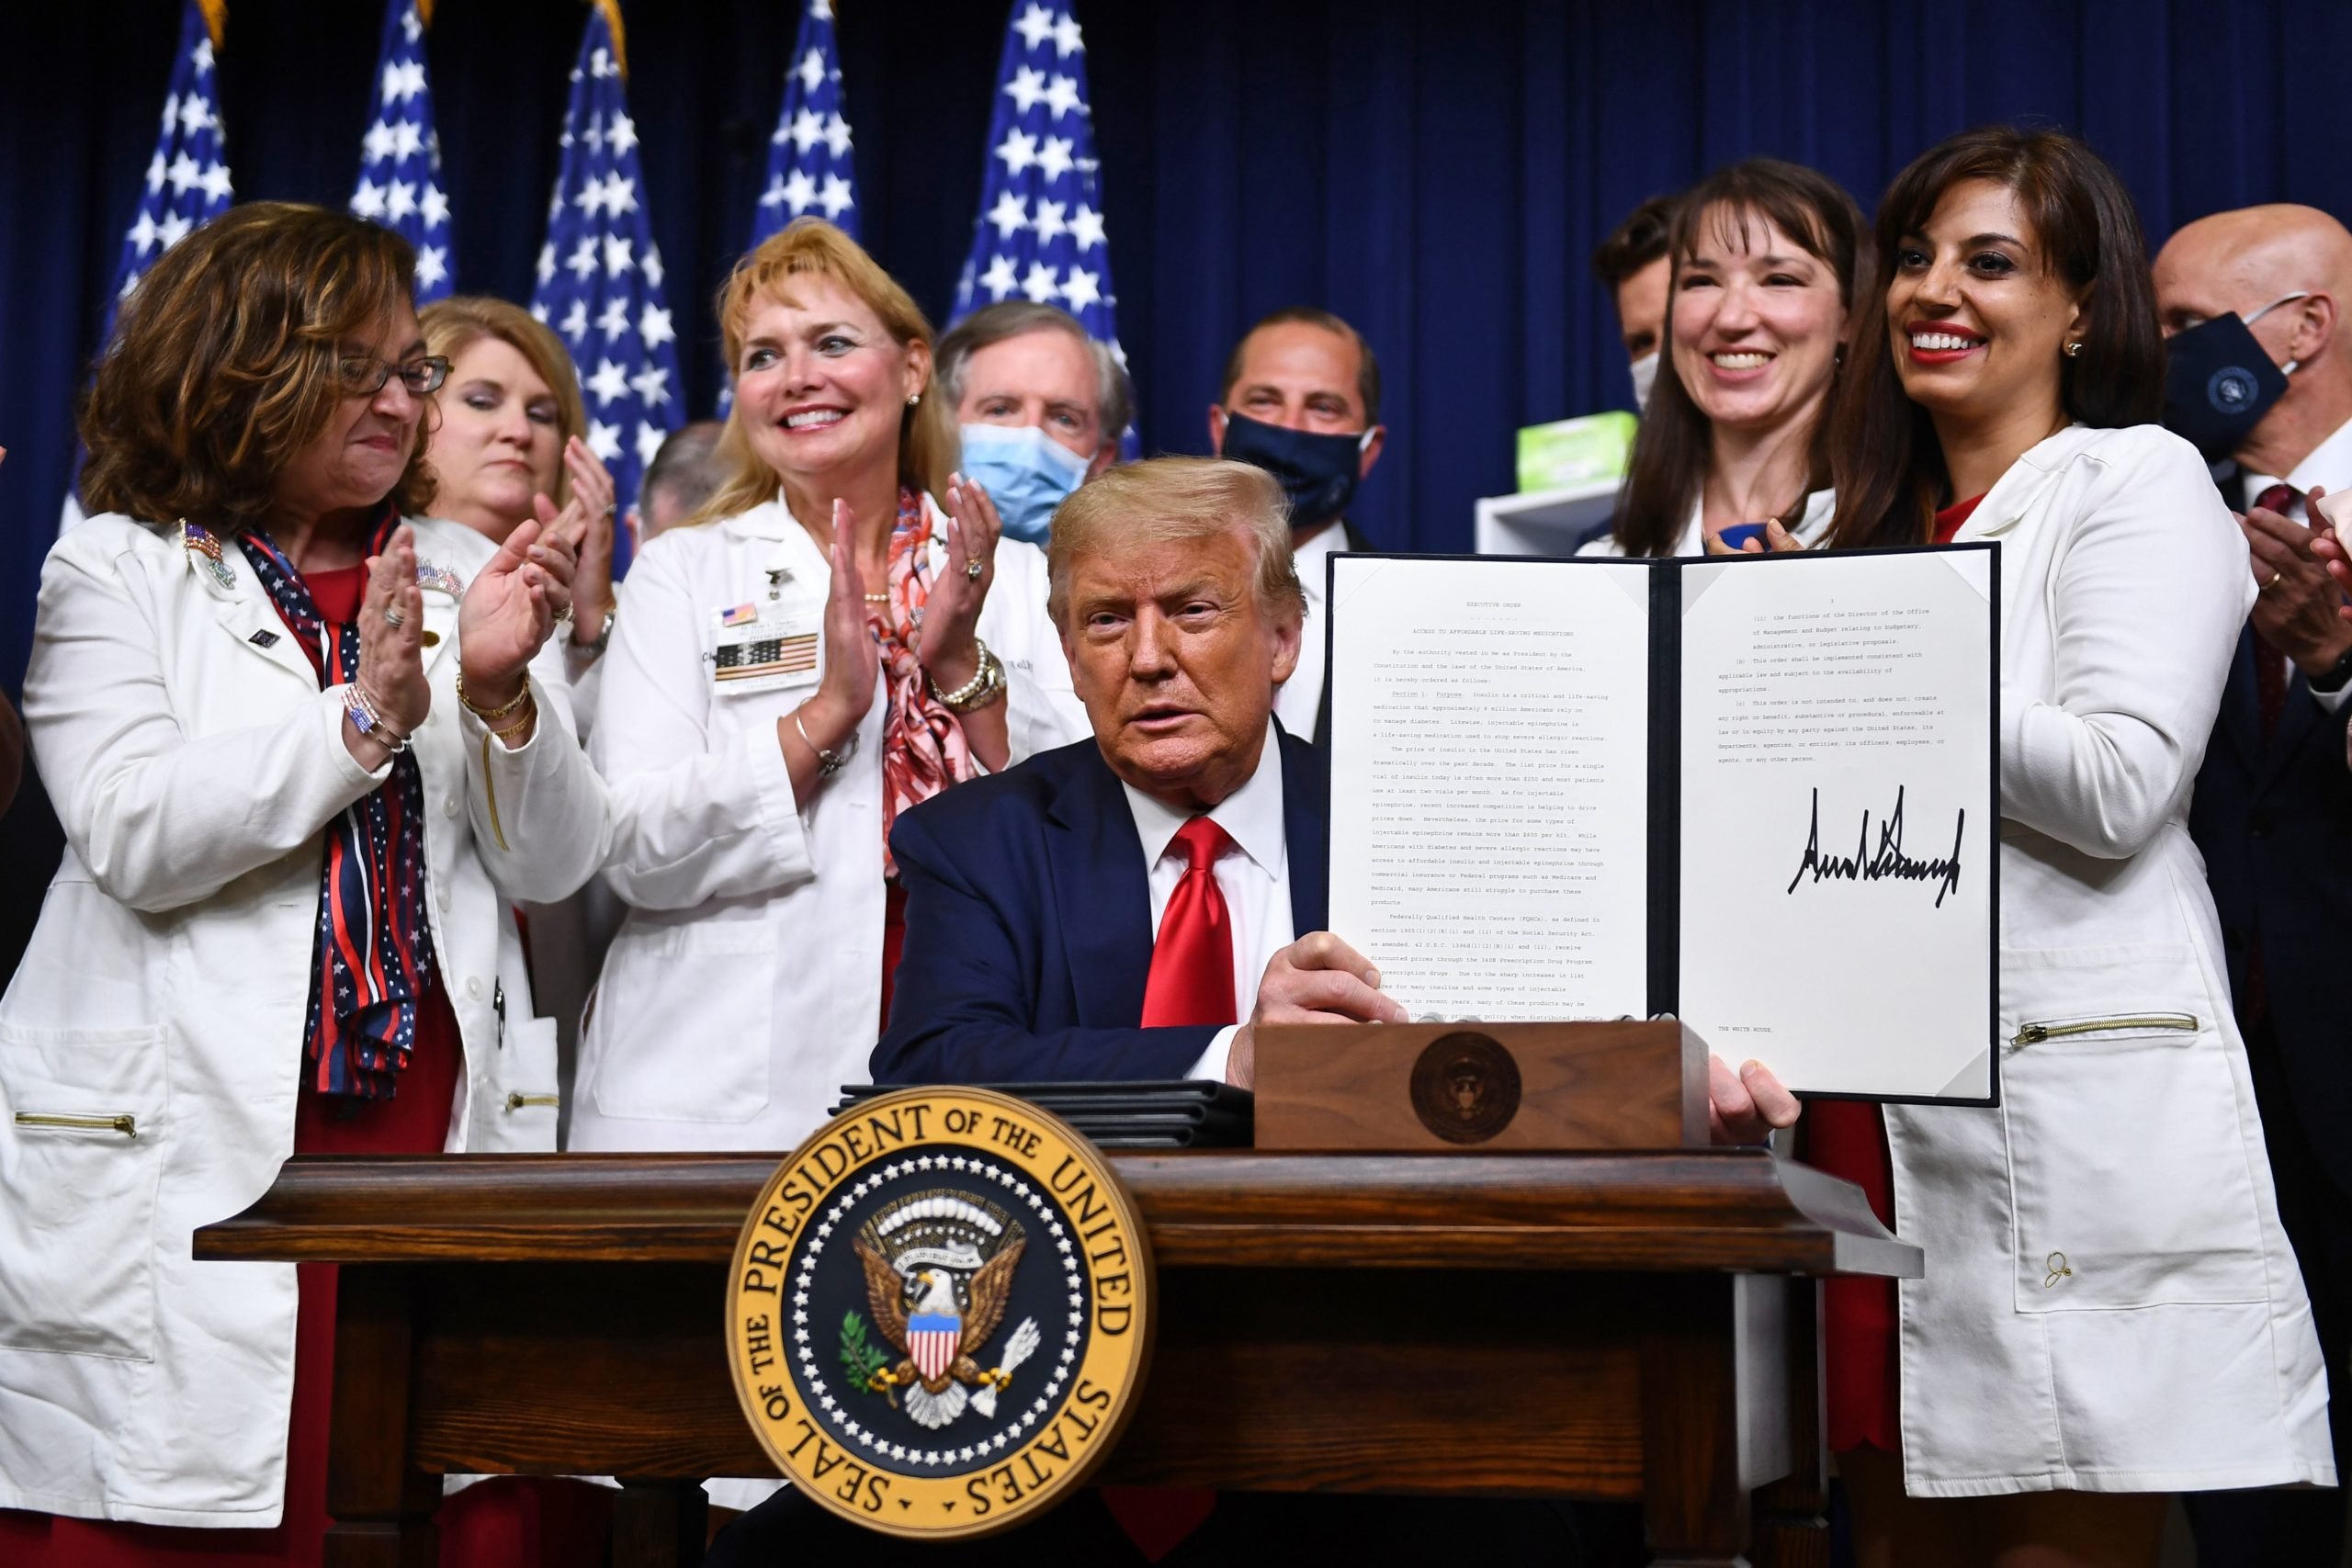 US President Donald Trump signs an executive order on lowering drug prices at the White House, in Washington, DC on July 24, 2020. (BRENDAN SMIALOWSKI/AFP via Getty Images)